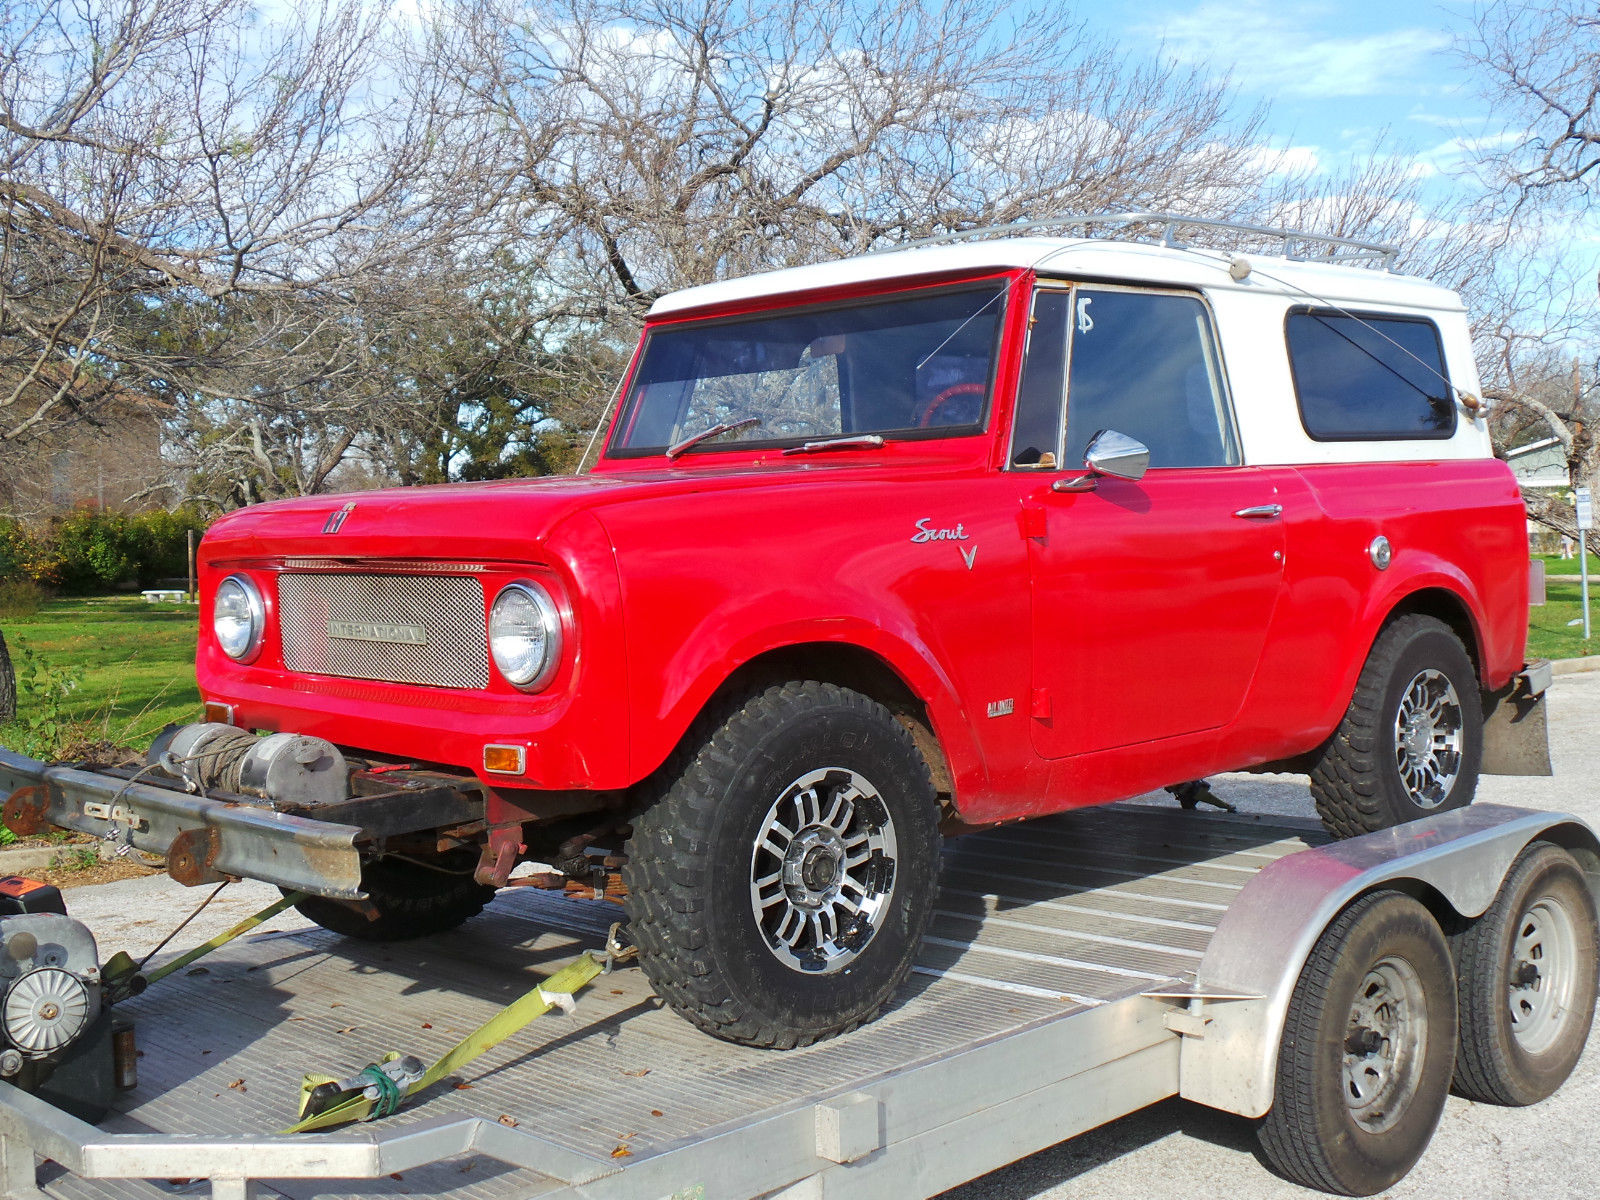 1968 International Scout 800 Factory V8 With Winch And